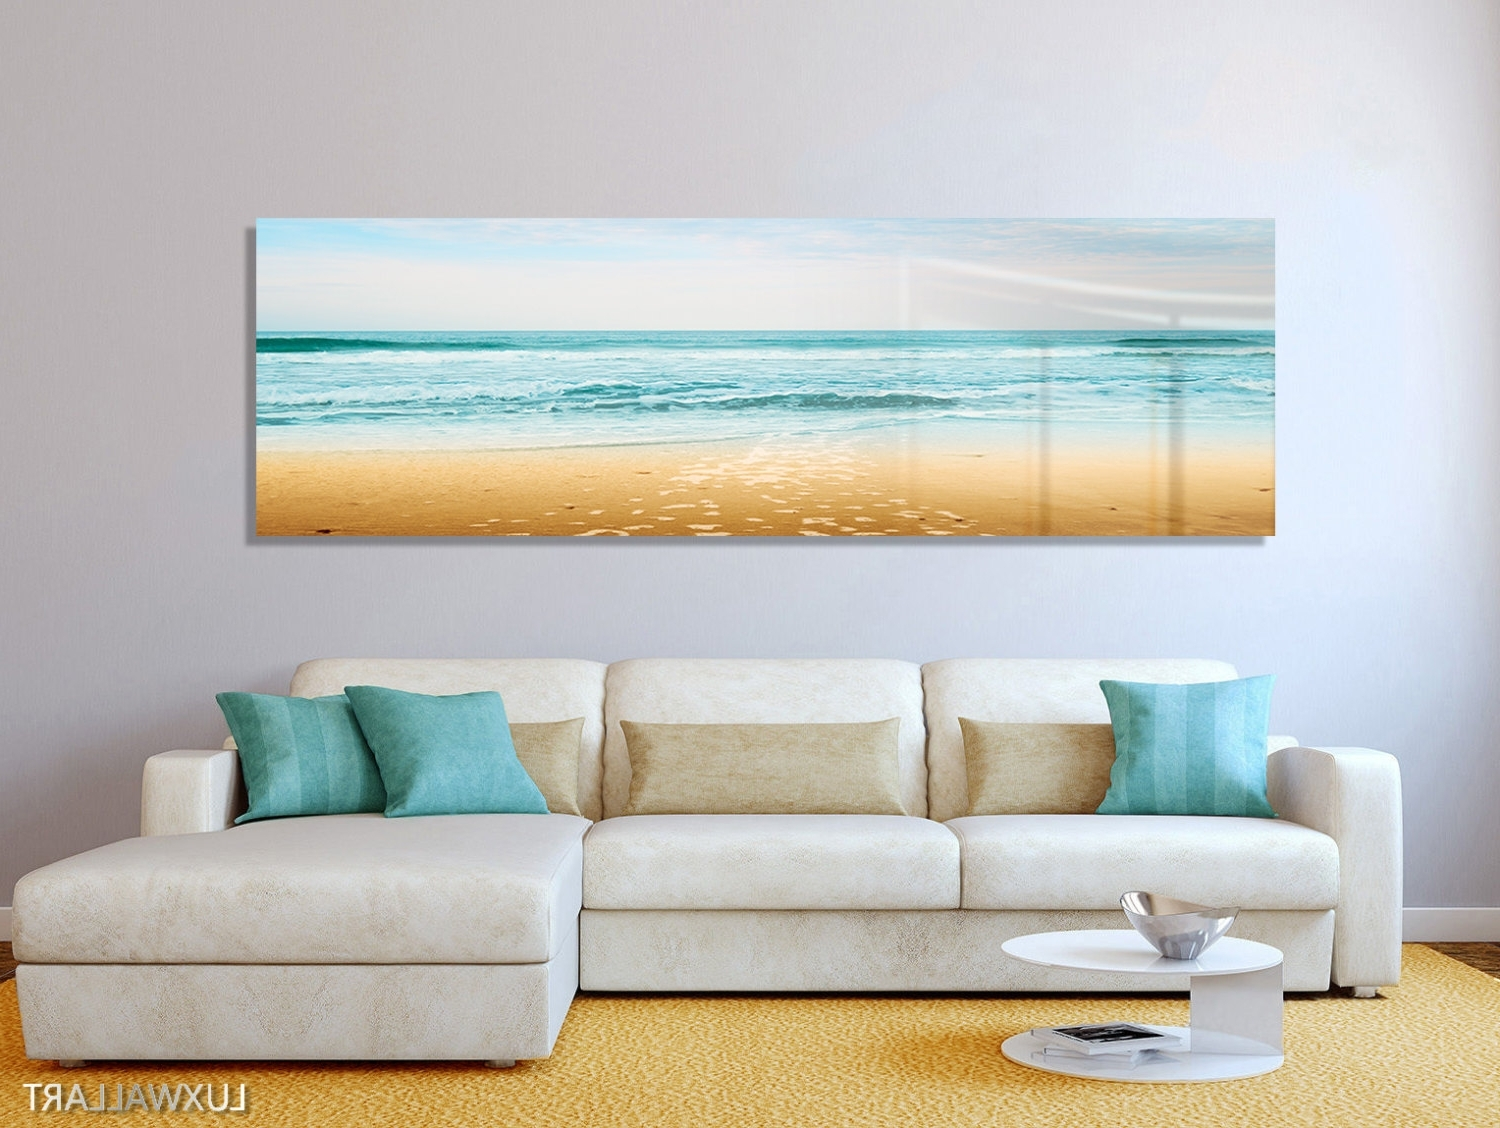 Panoramic Wall Art For Best And Newest Turquoise Beach Ocean Panoramic Modern Contemporary Hd Metal (Gallery 9 of 15)